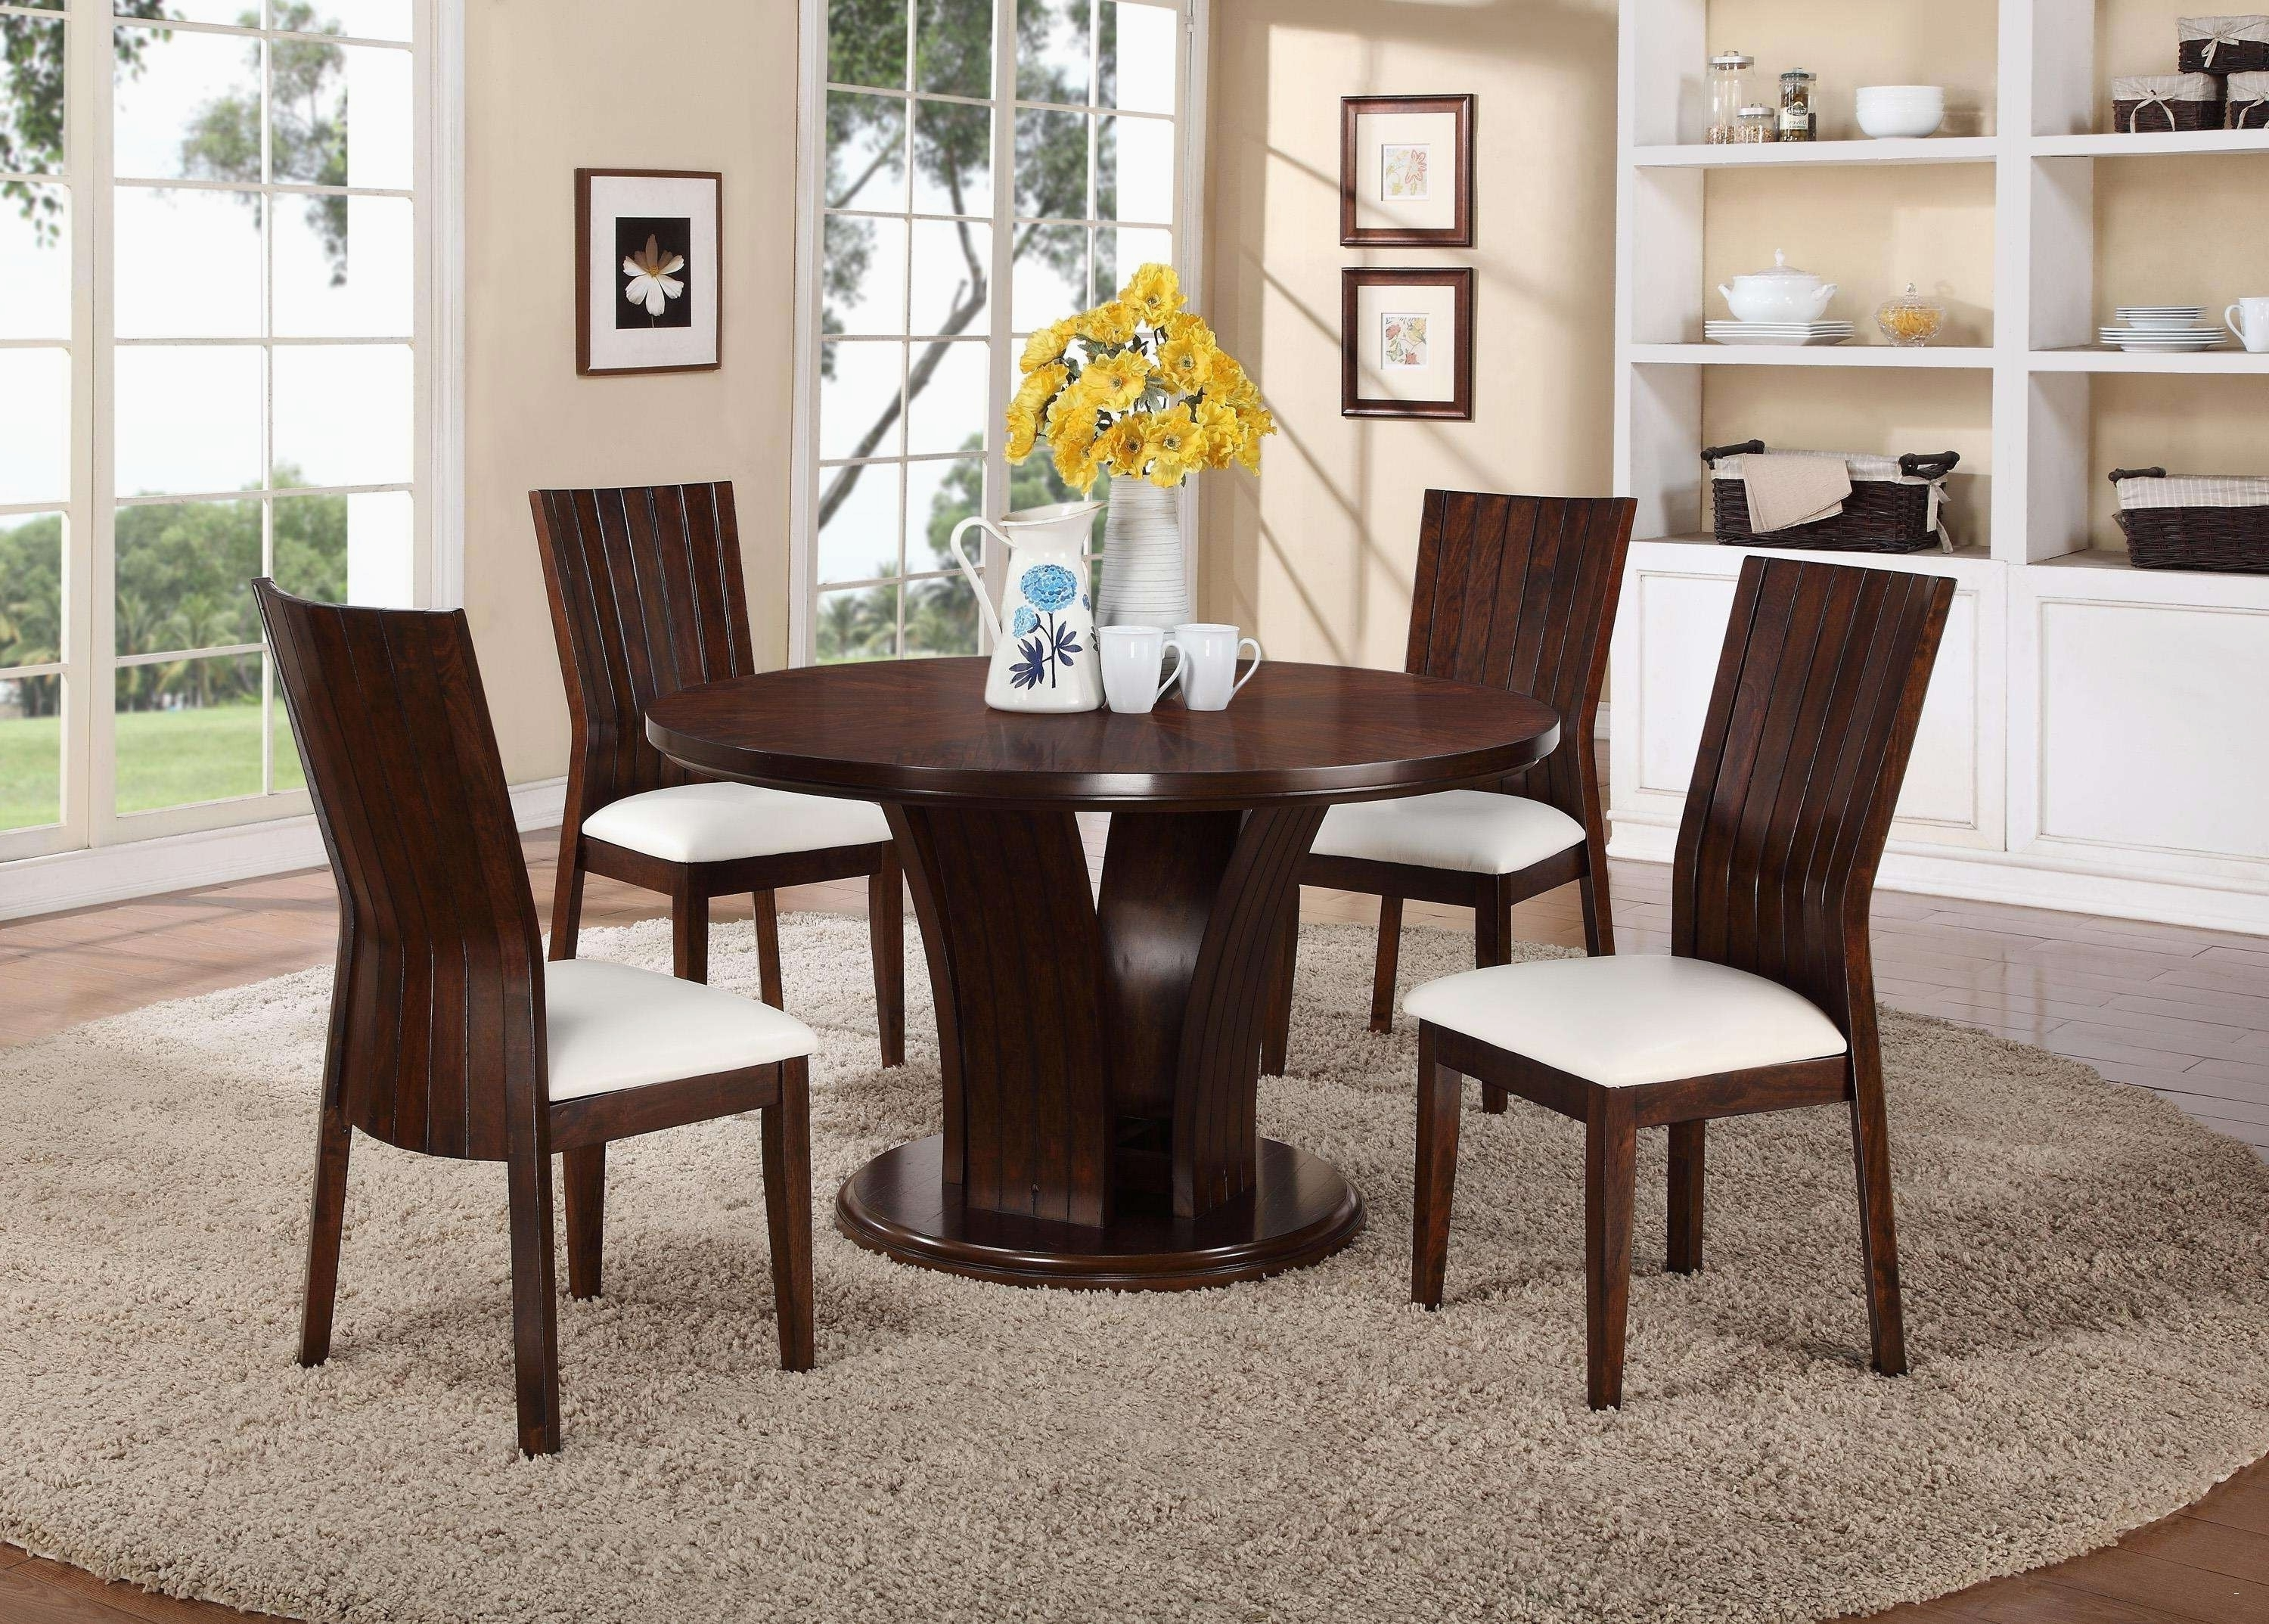 6 Seat Dining Tables Pertaining To Most Up To Date Extended Dining Table And 6 Chairs Beautiful 34 Luxury 6 Seat (View 19 of 25)